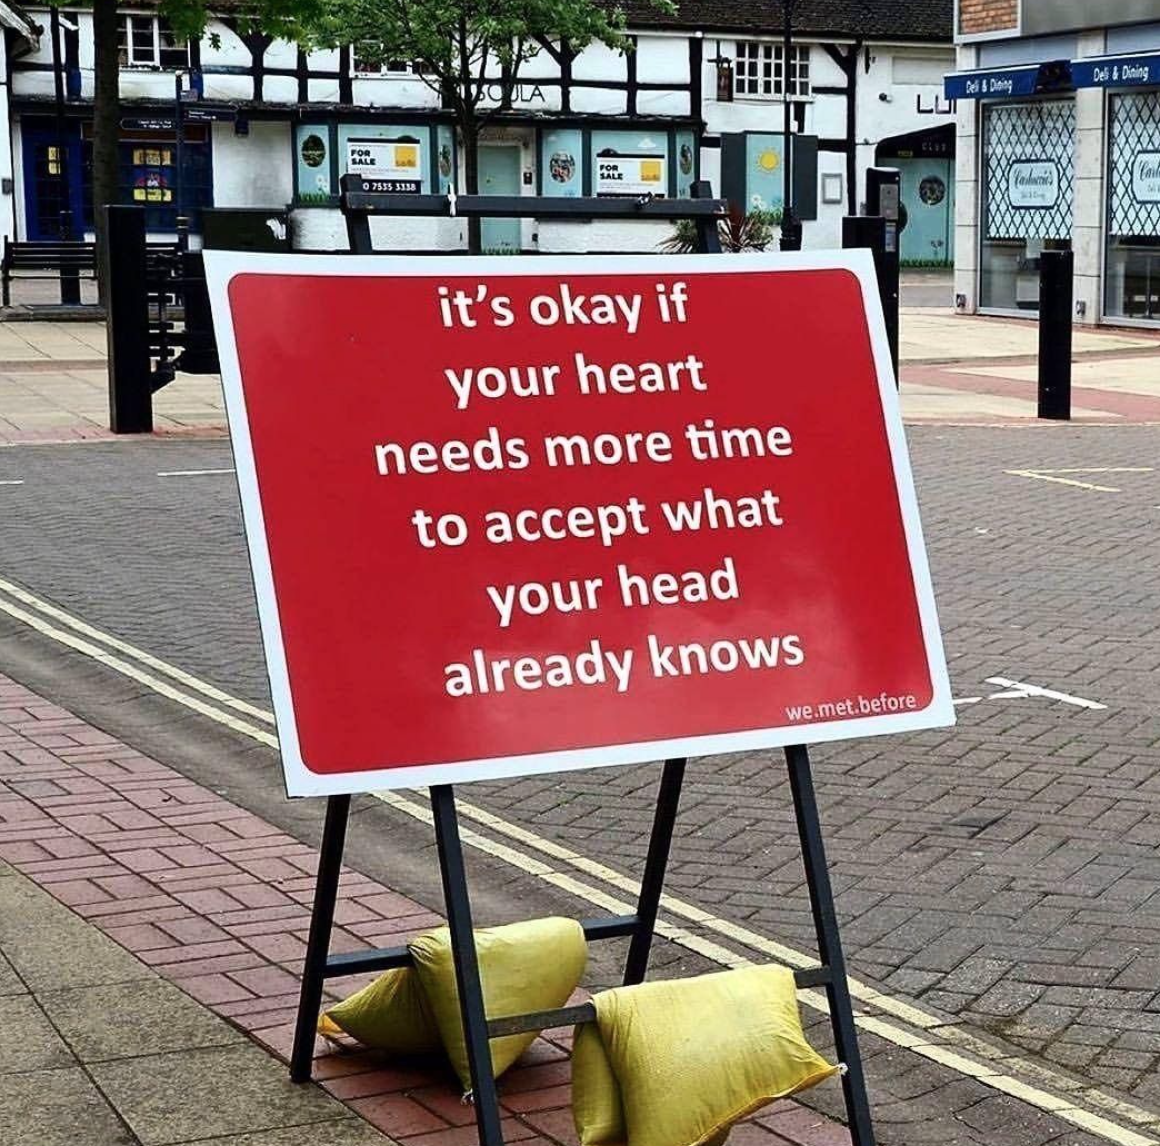 [Image] It's okay if your heart needs more time to accept what your head already knows.